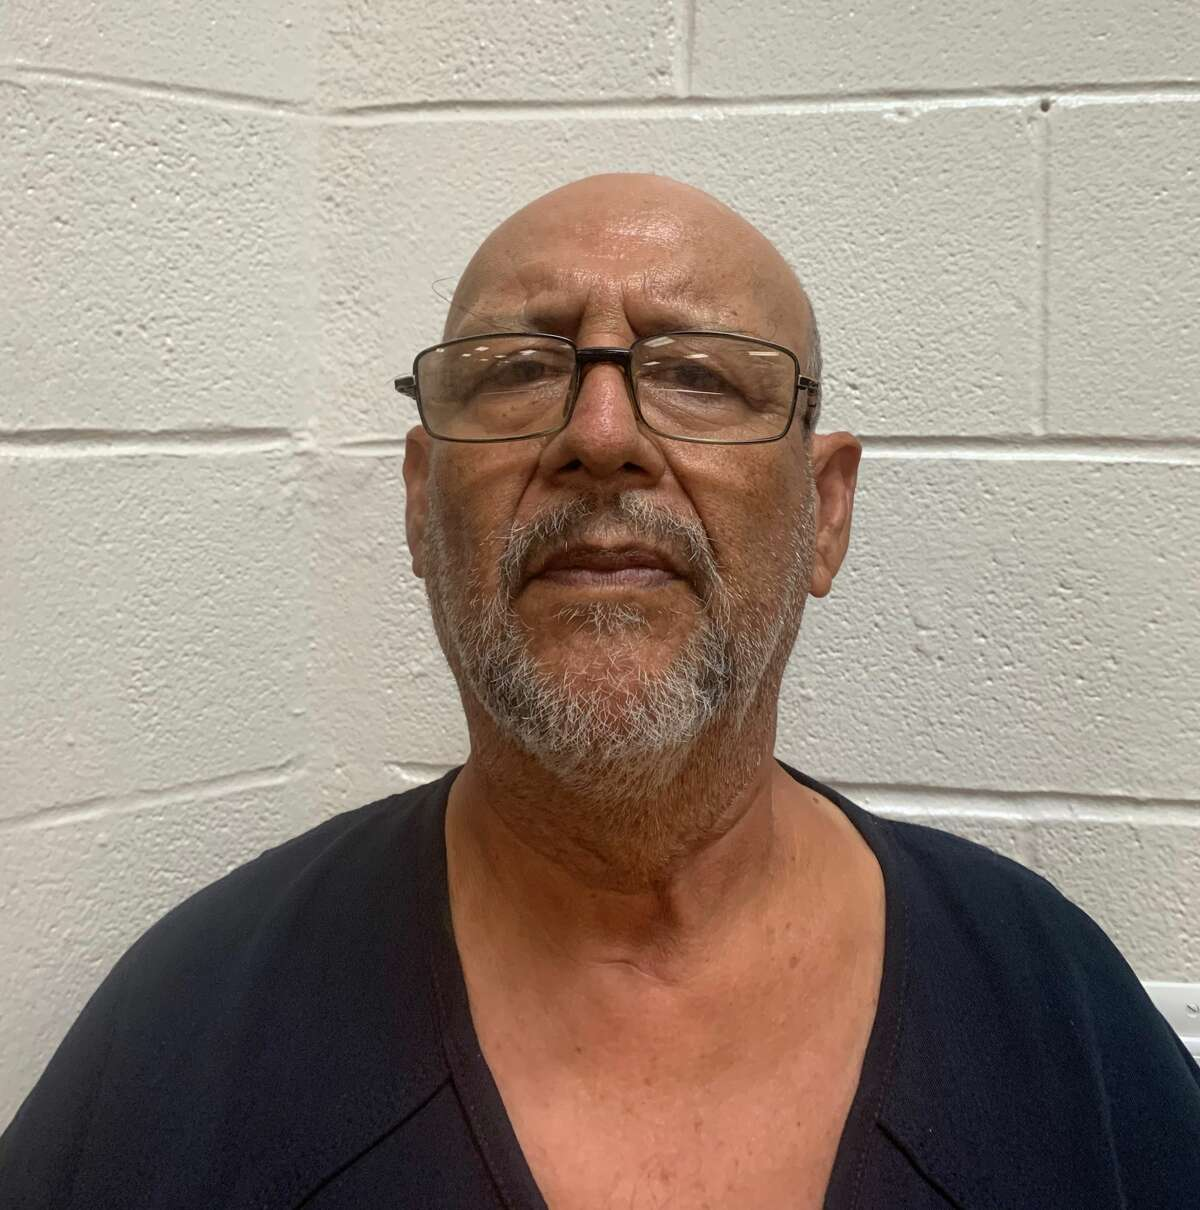 Ruben Alejandra Leal, 69, had previous convictions for voluntary manslaughter, distribution of a controlled substance, trespassing and probation violation.